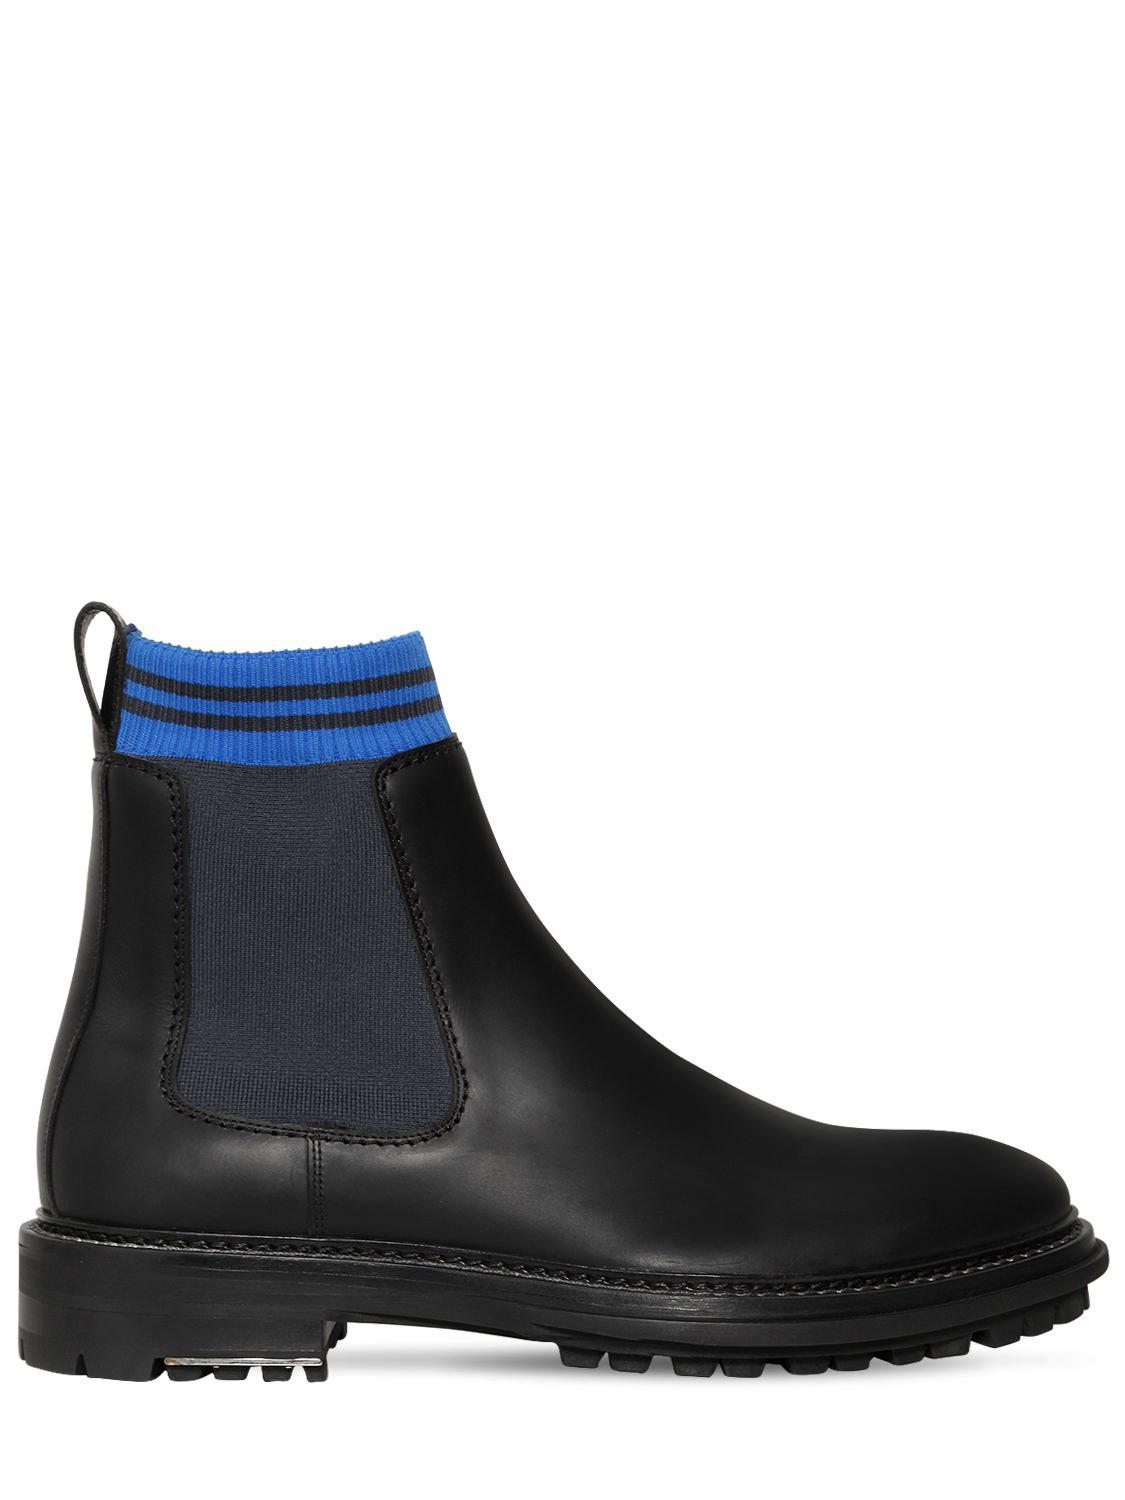 Lanvin 40MM LEATHER & KNIT CHELSEA BOOTS 5Shsa